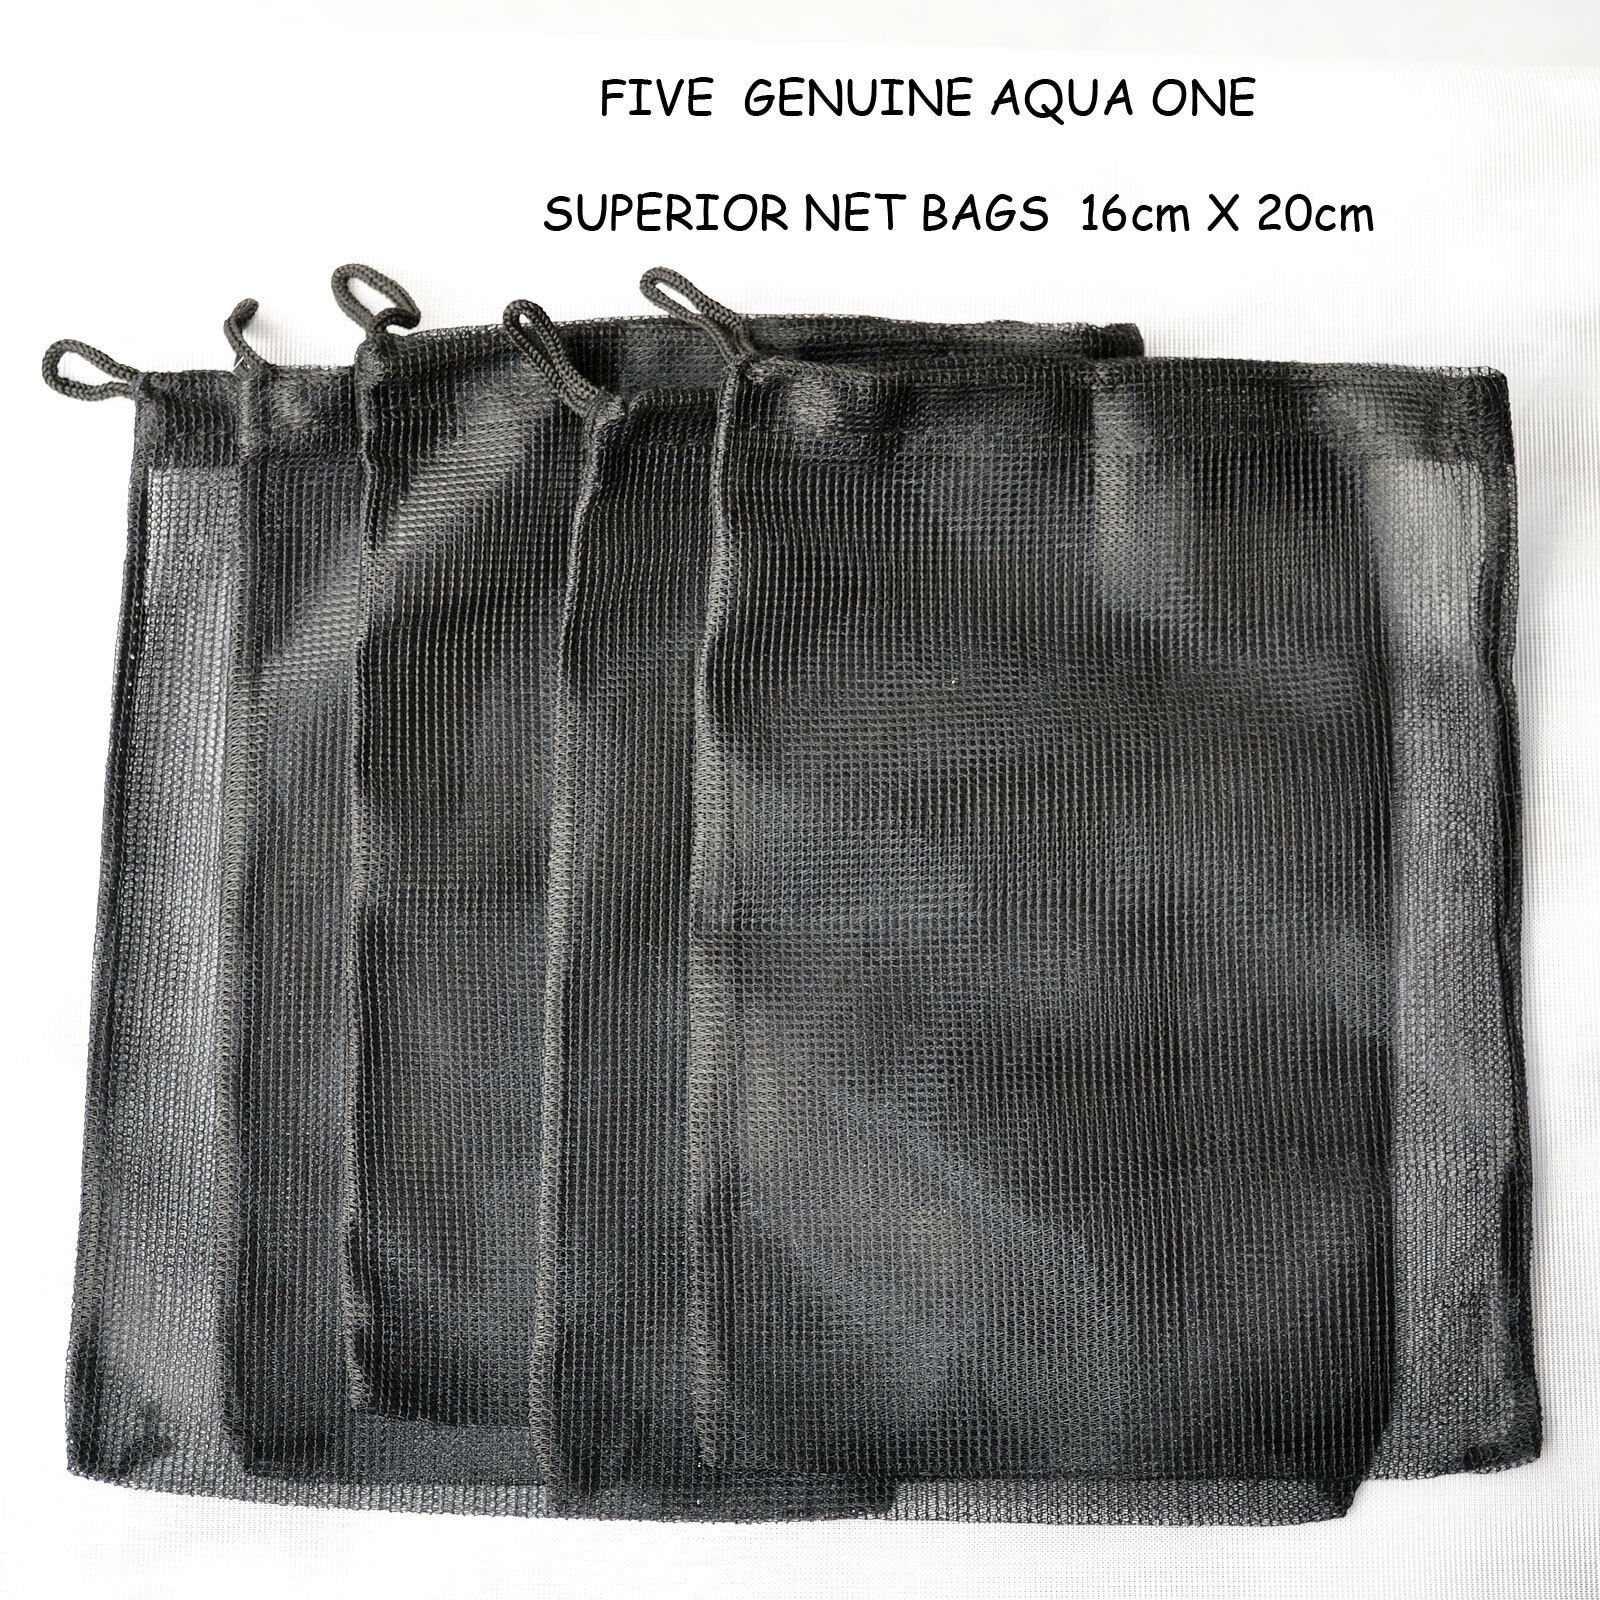 """GREAT DEAL' FIVE AQUA ONE BAGS - 16cm X 20cm - £4.95 That's 99p each! WITH F/P"